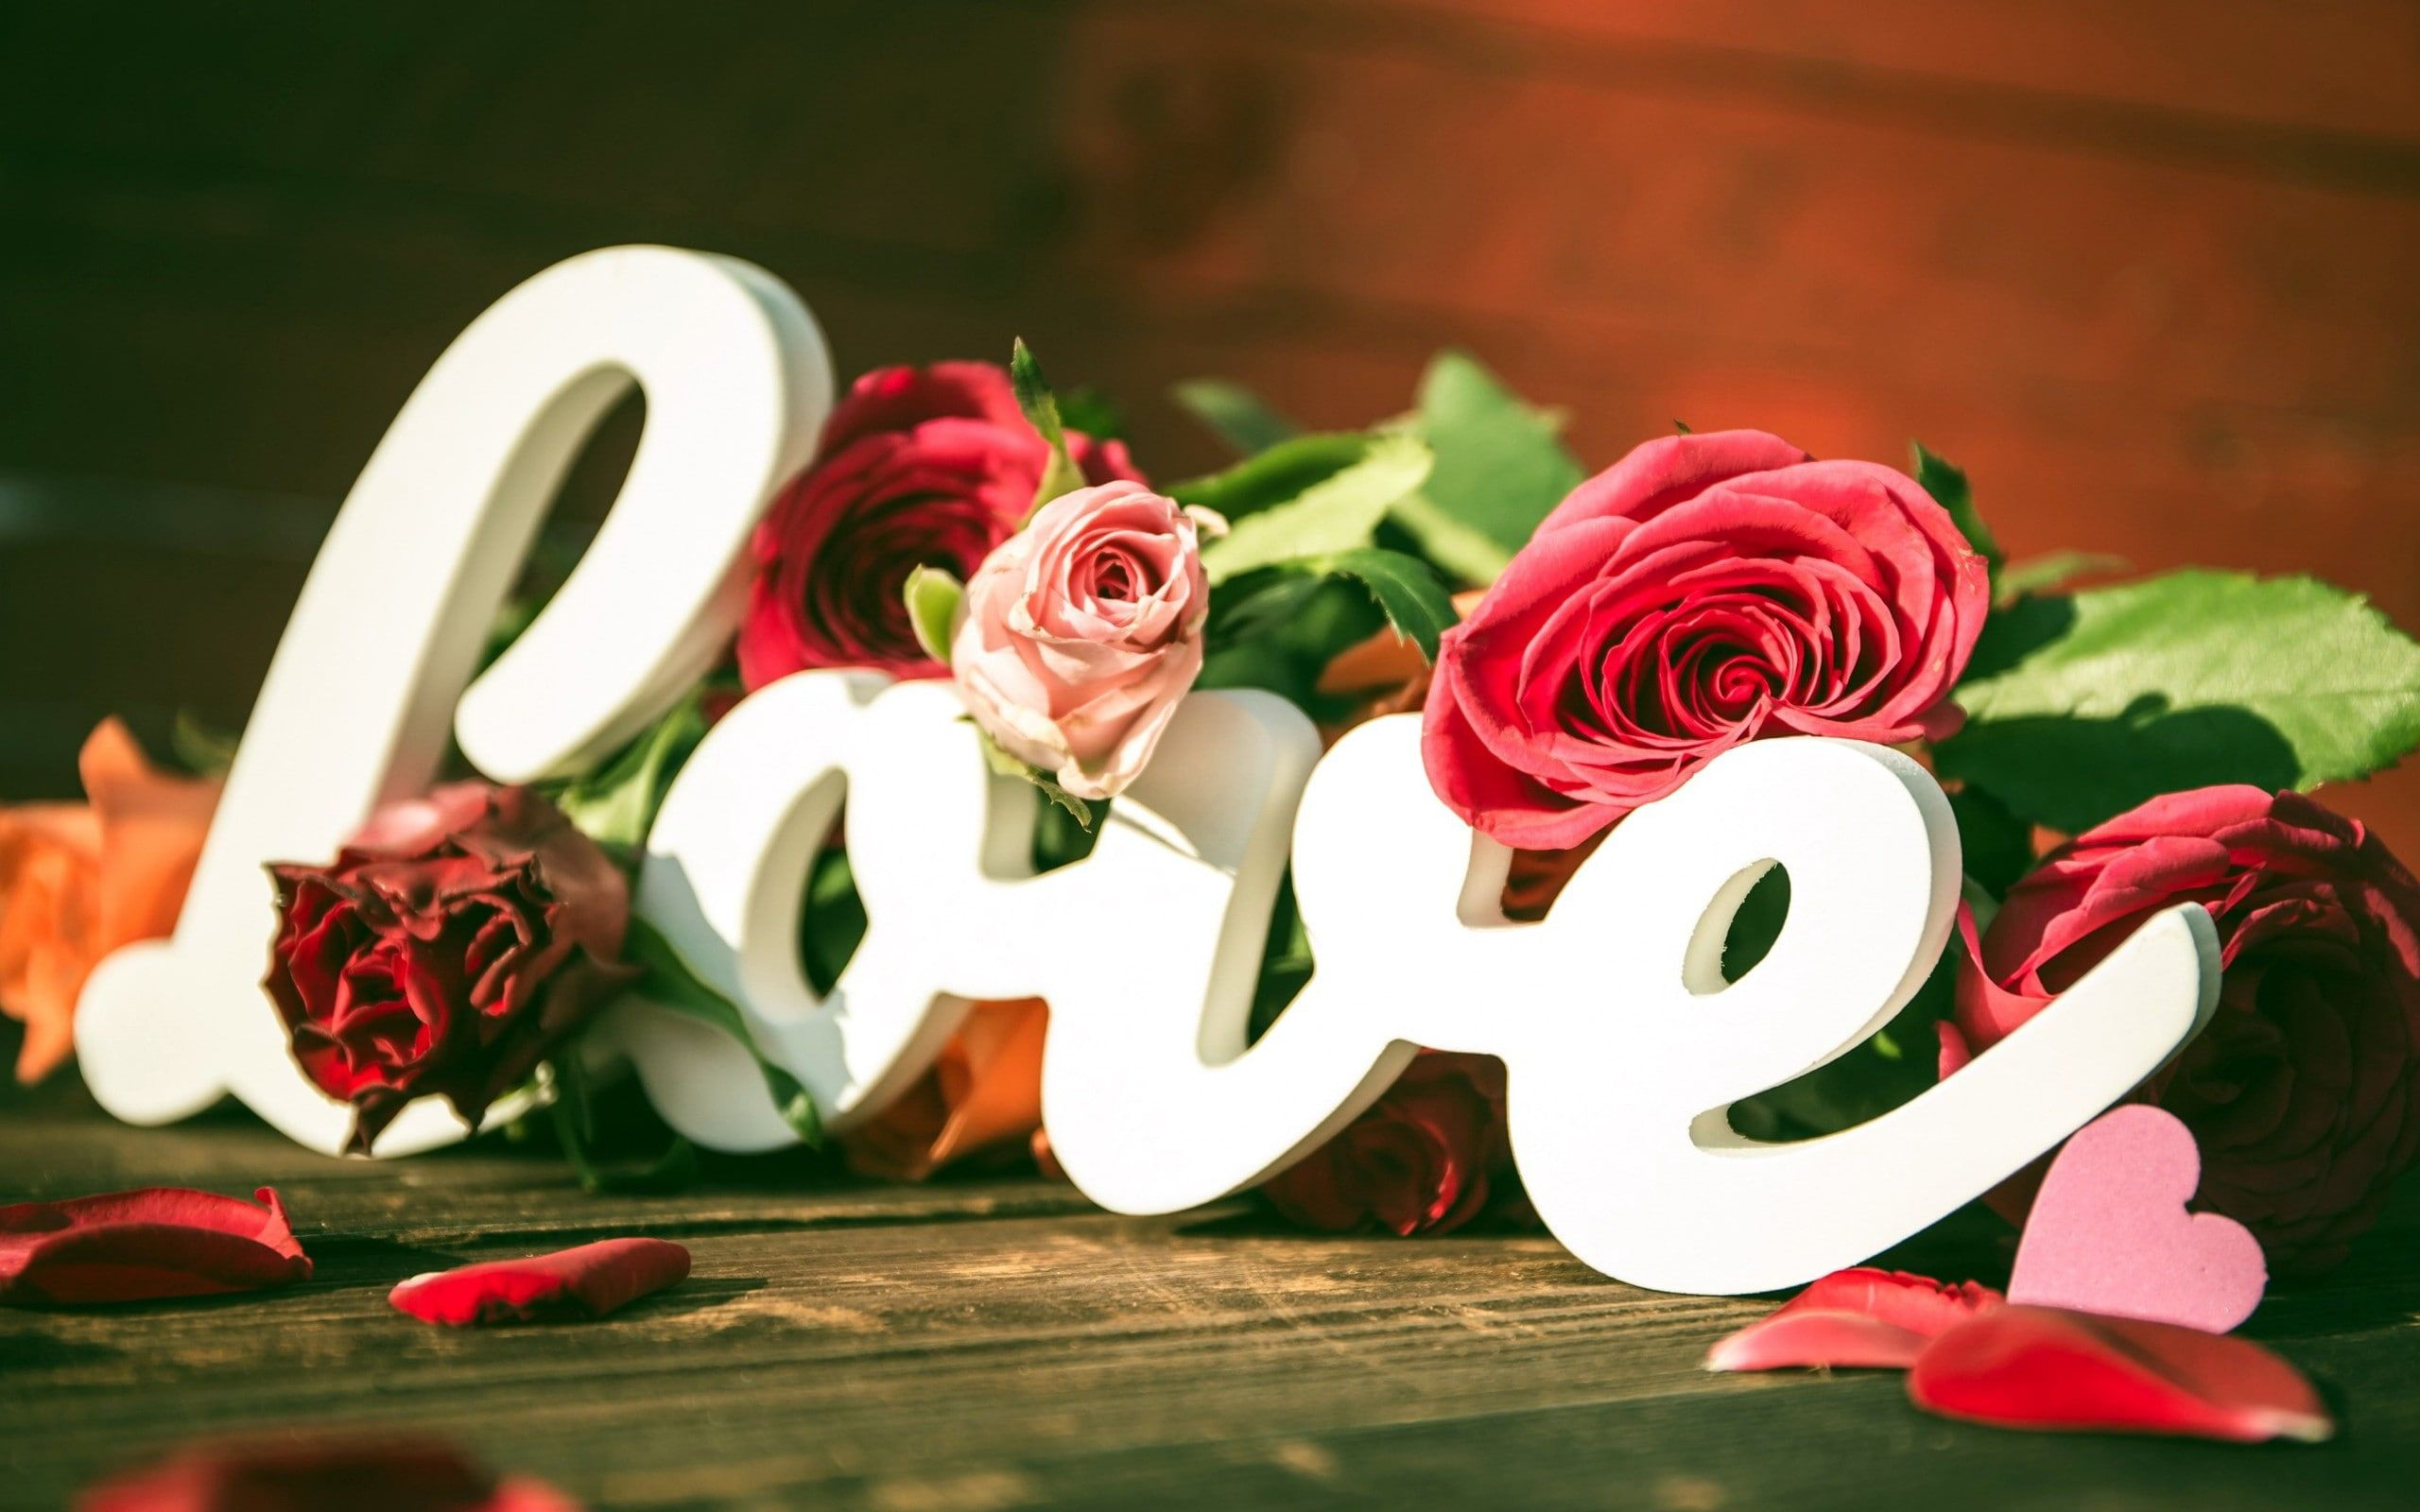 Heart Flowers Typography Love Rose 2k Wallpaper Hdwallpaper Desktop In 2020 Rose Flower Wallpaper Beautiful Love Flowers Flower Images Hd